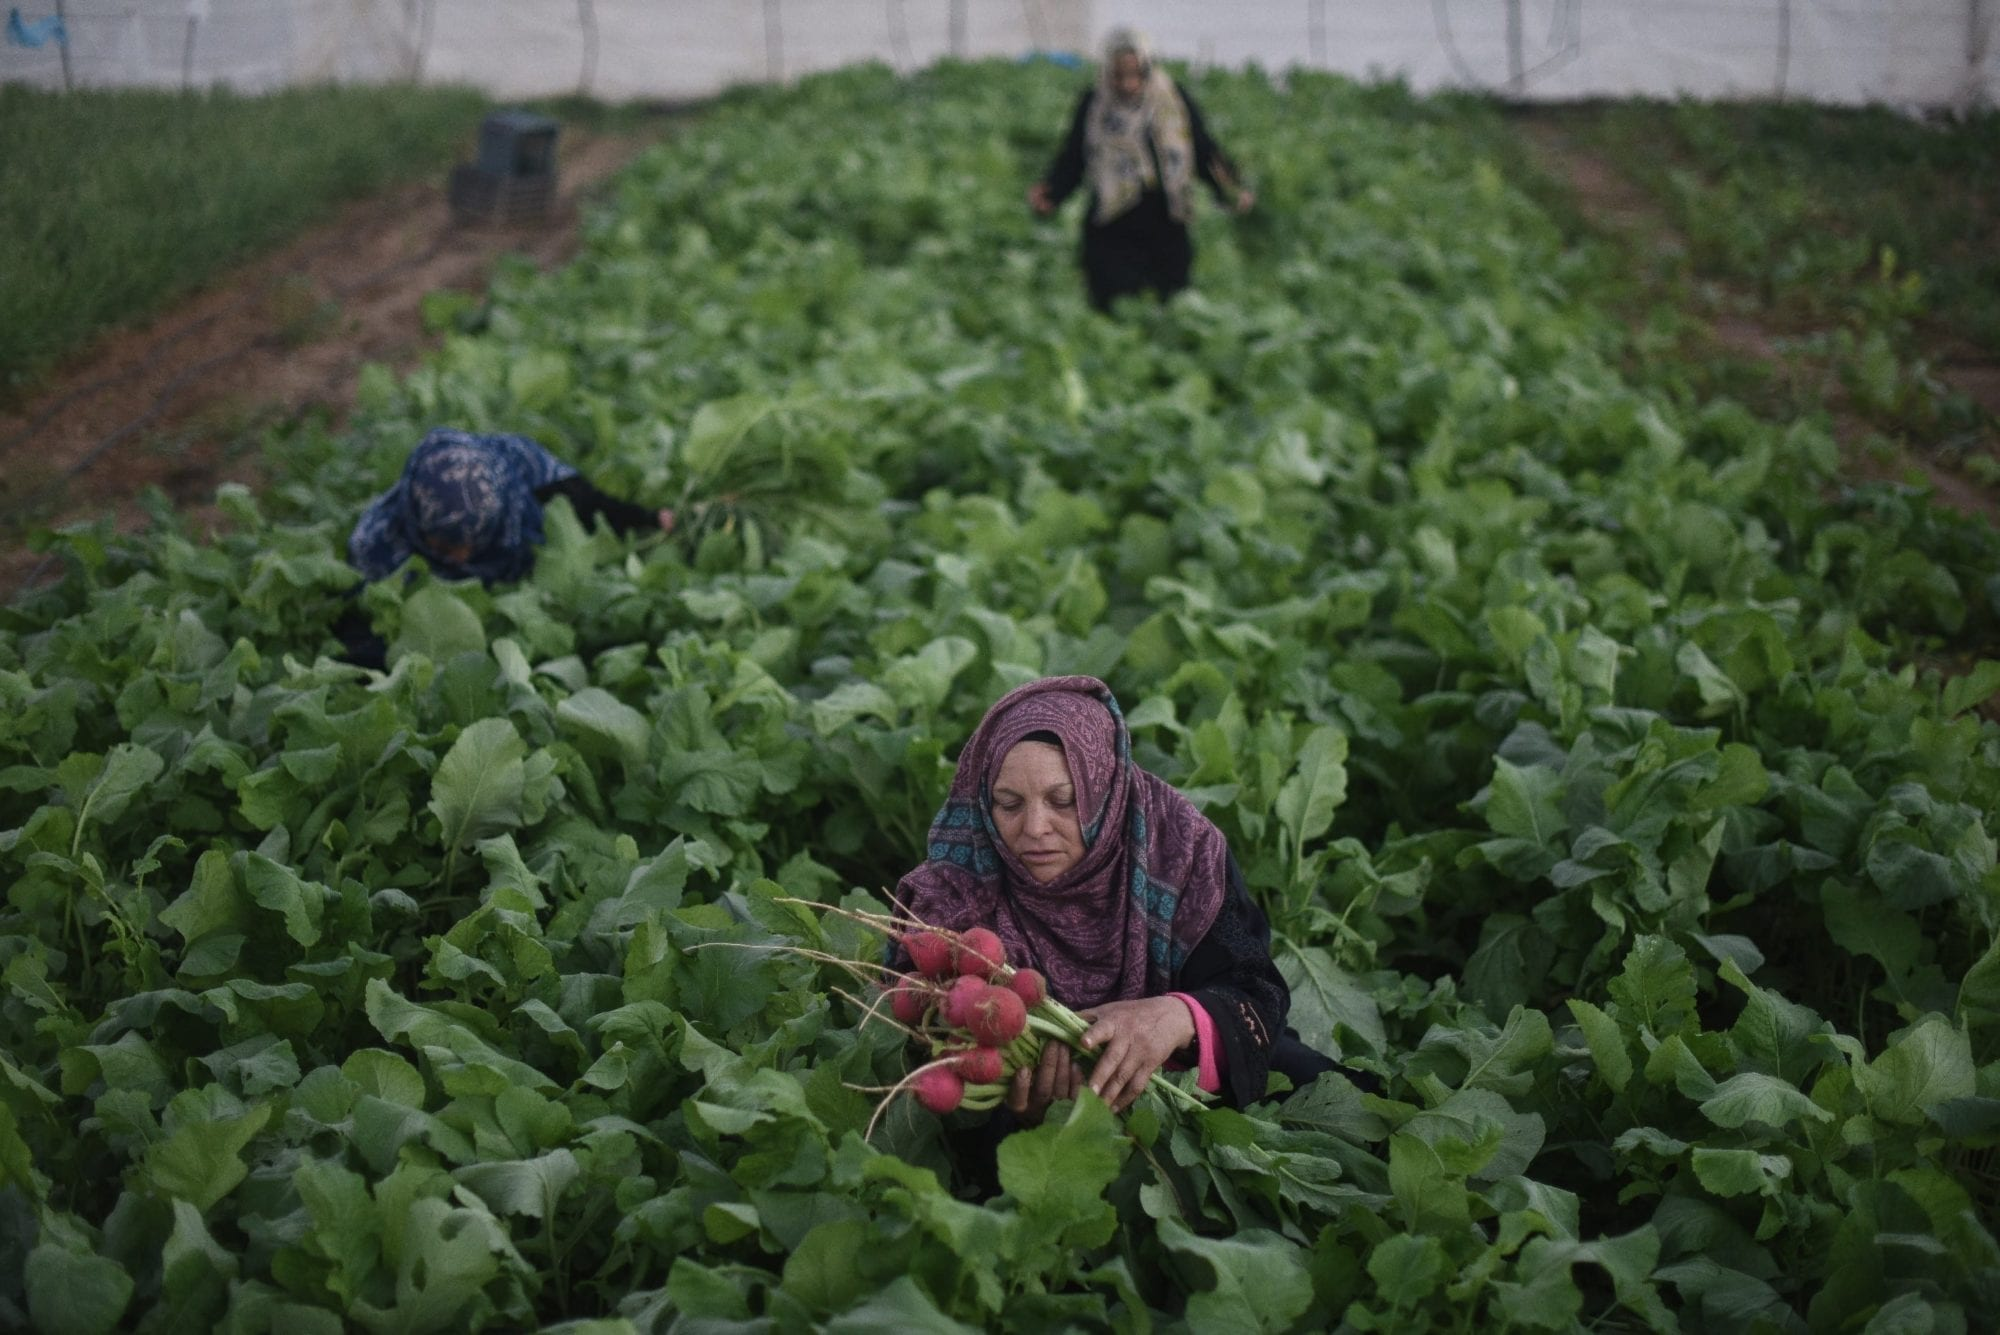 Gaza, Solidarity Center, worker rights, Palestine, farmworker, agricultural worker